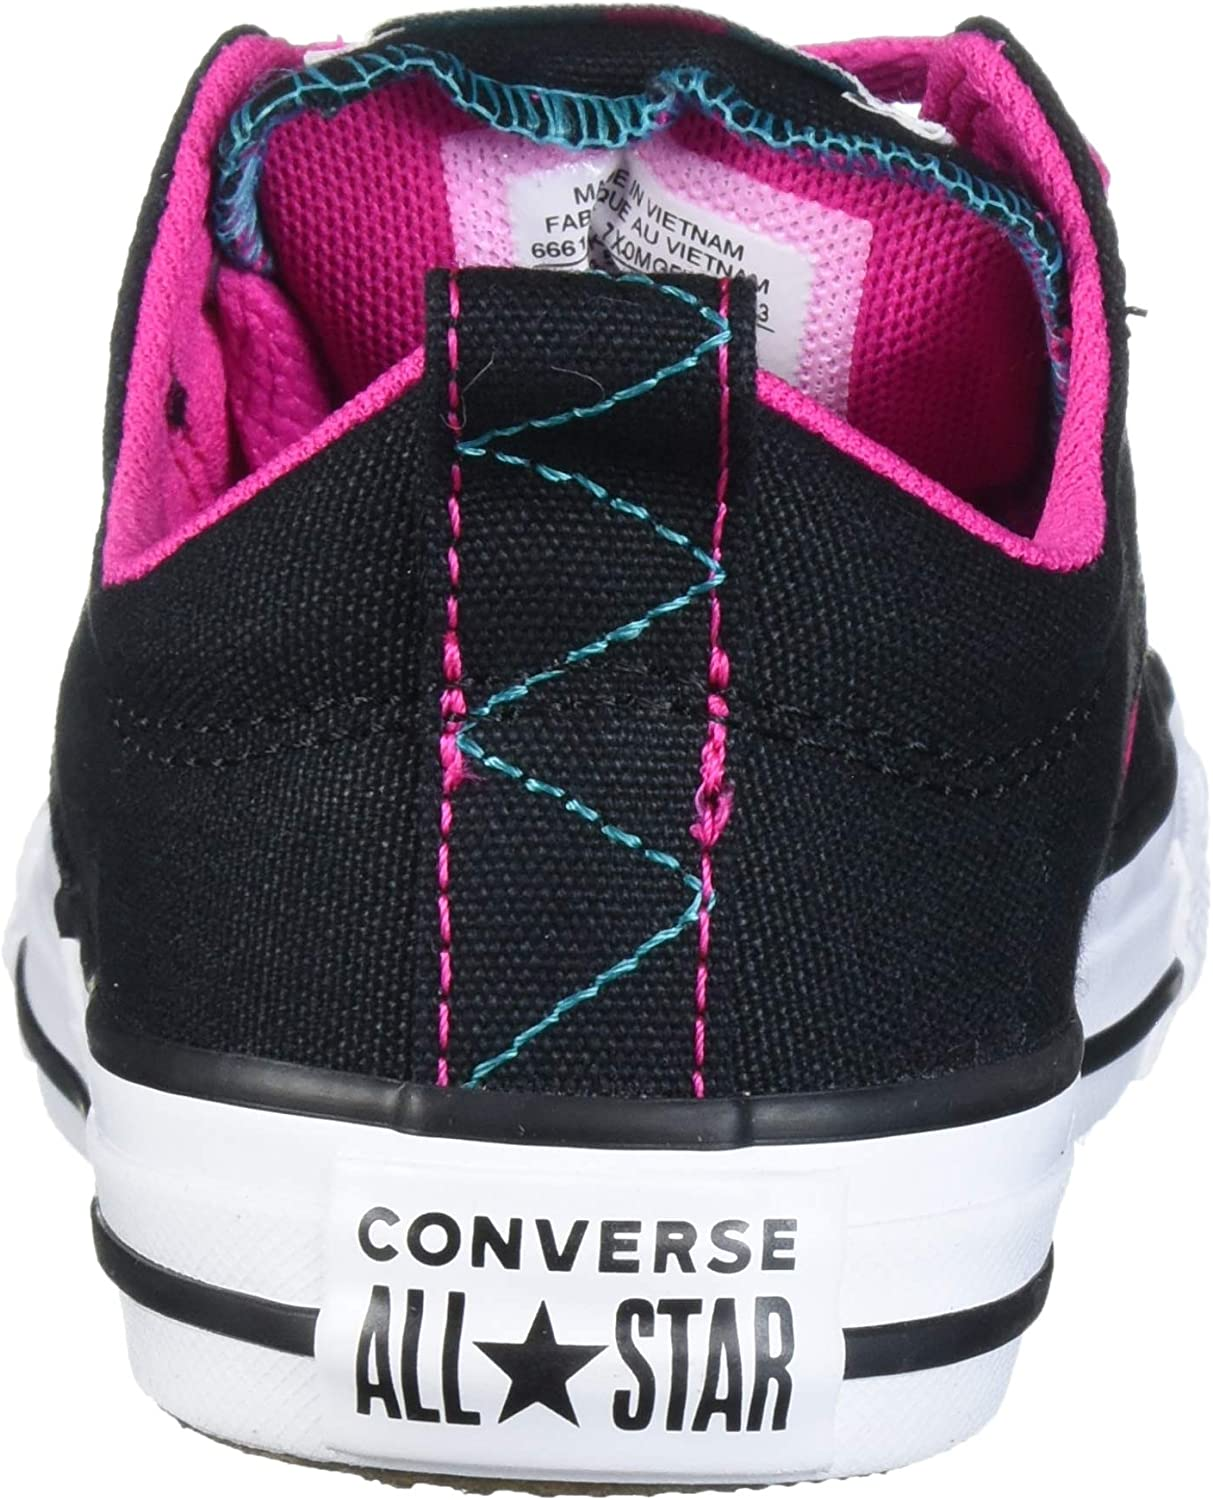 YOUTH BOYS//GIRLS BLACK AND WHITE CONVERSE ALL STAR-SEE LISTING FOR SIZES i7a a